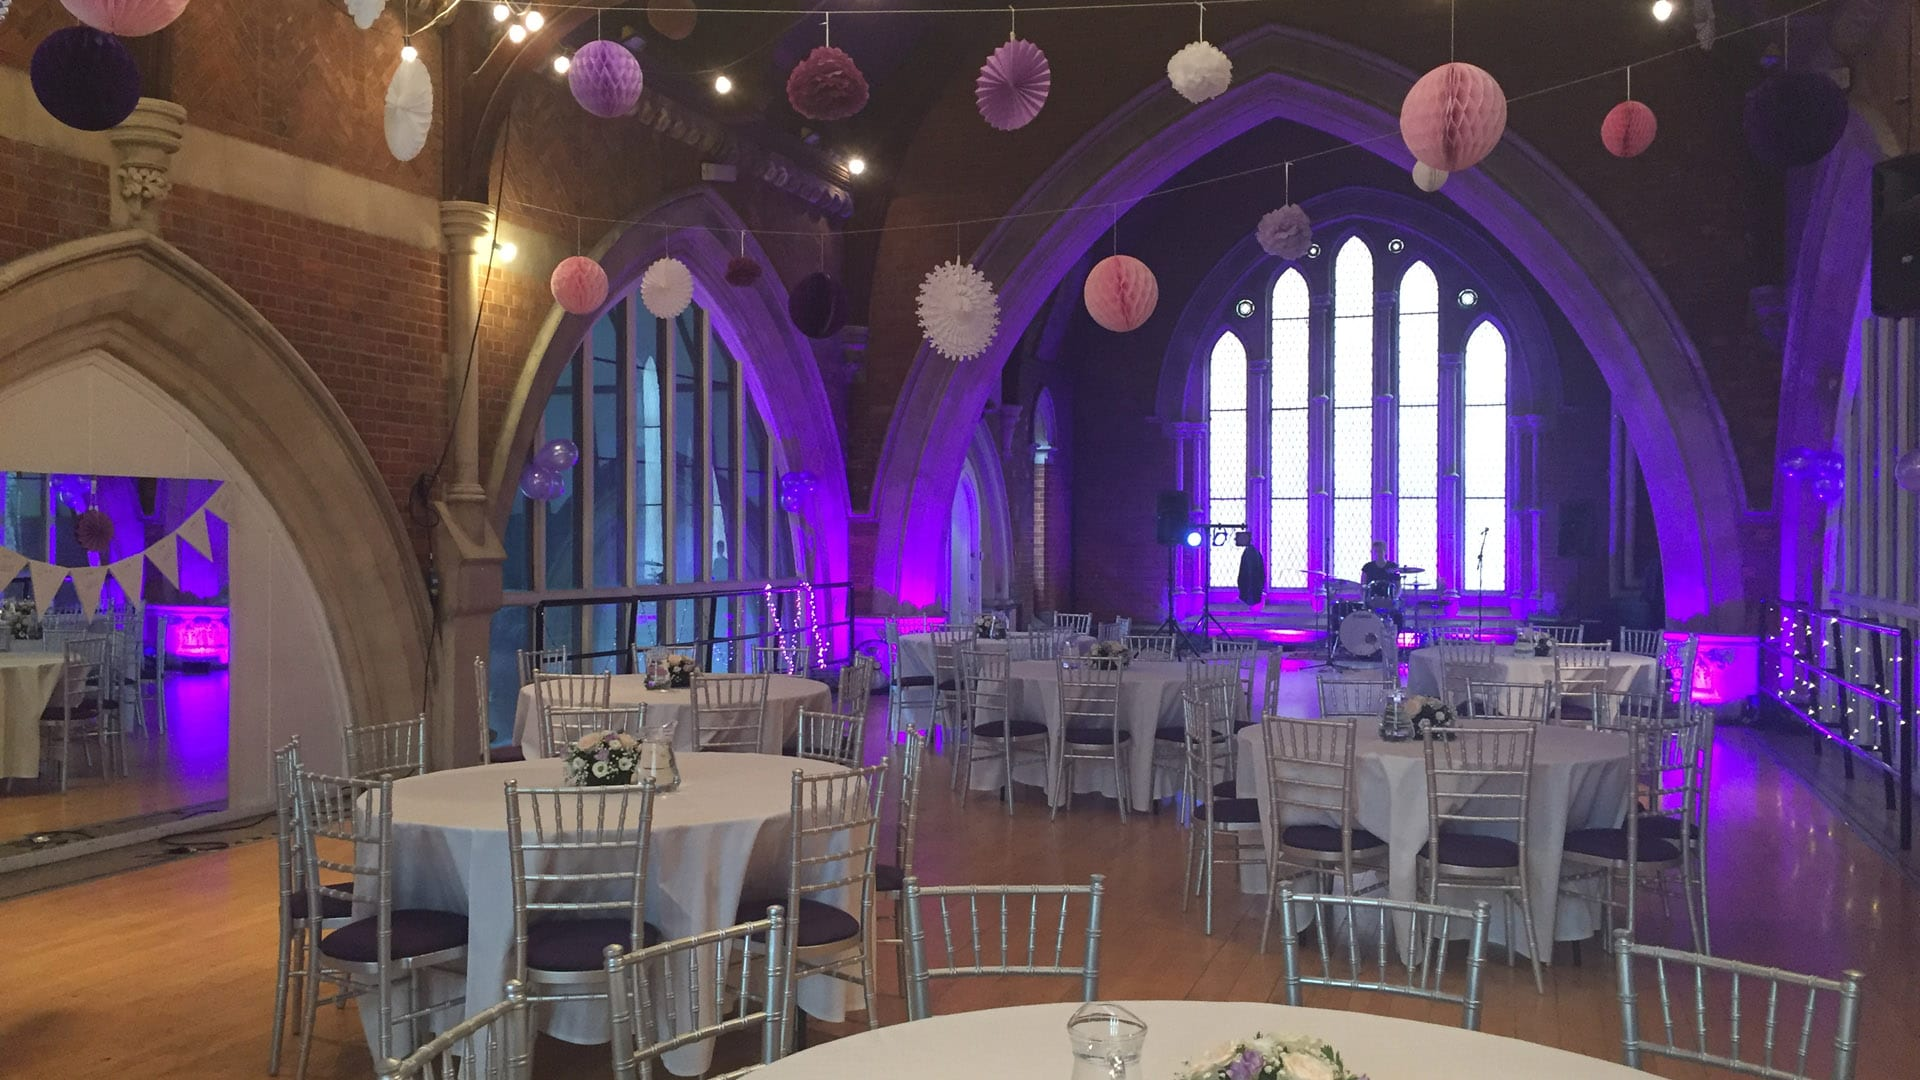 Studio 1 at Jacksons Lane prepared for a wedding - there's a stage for the band, bunting, and tables